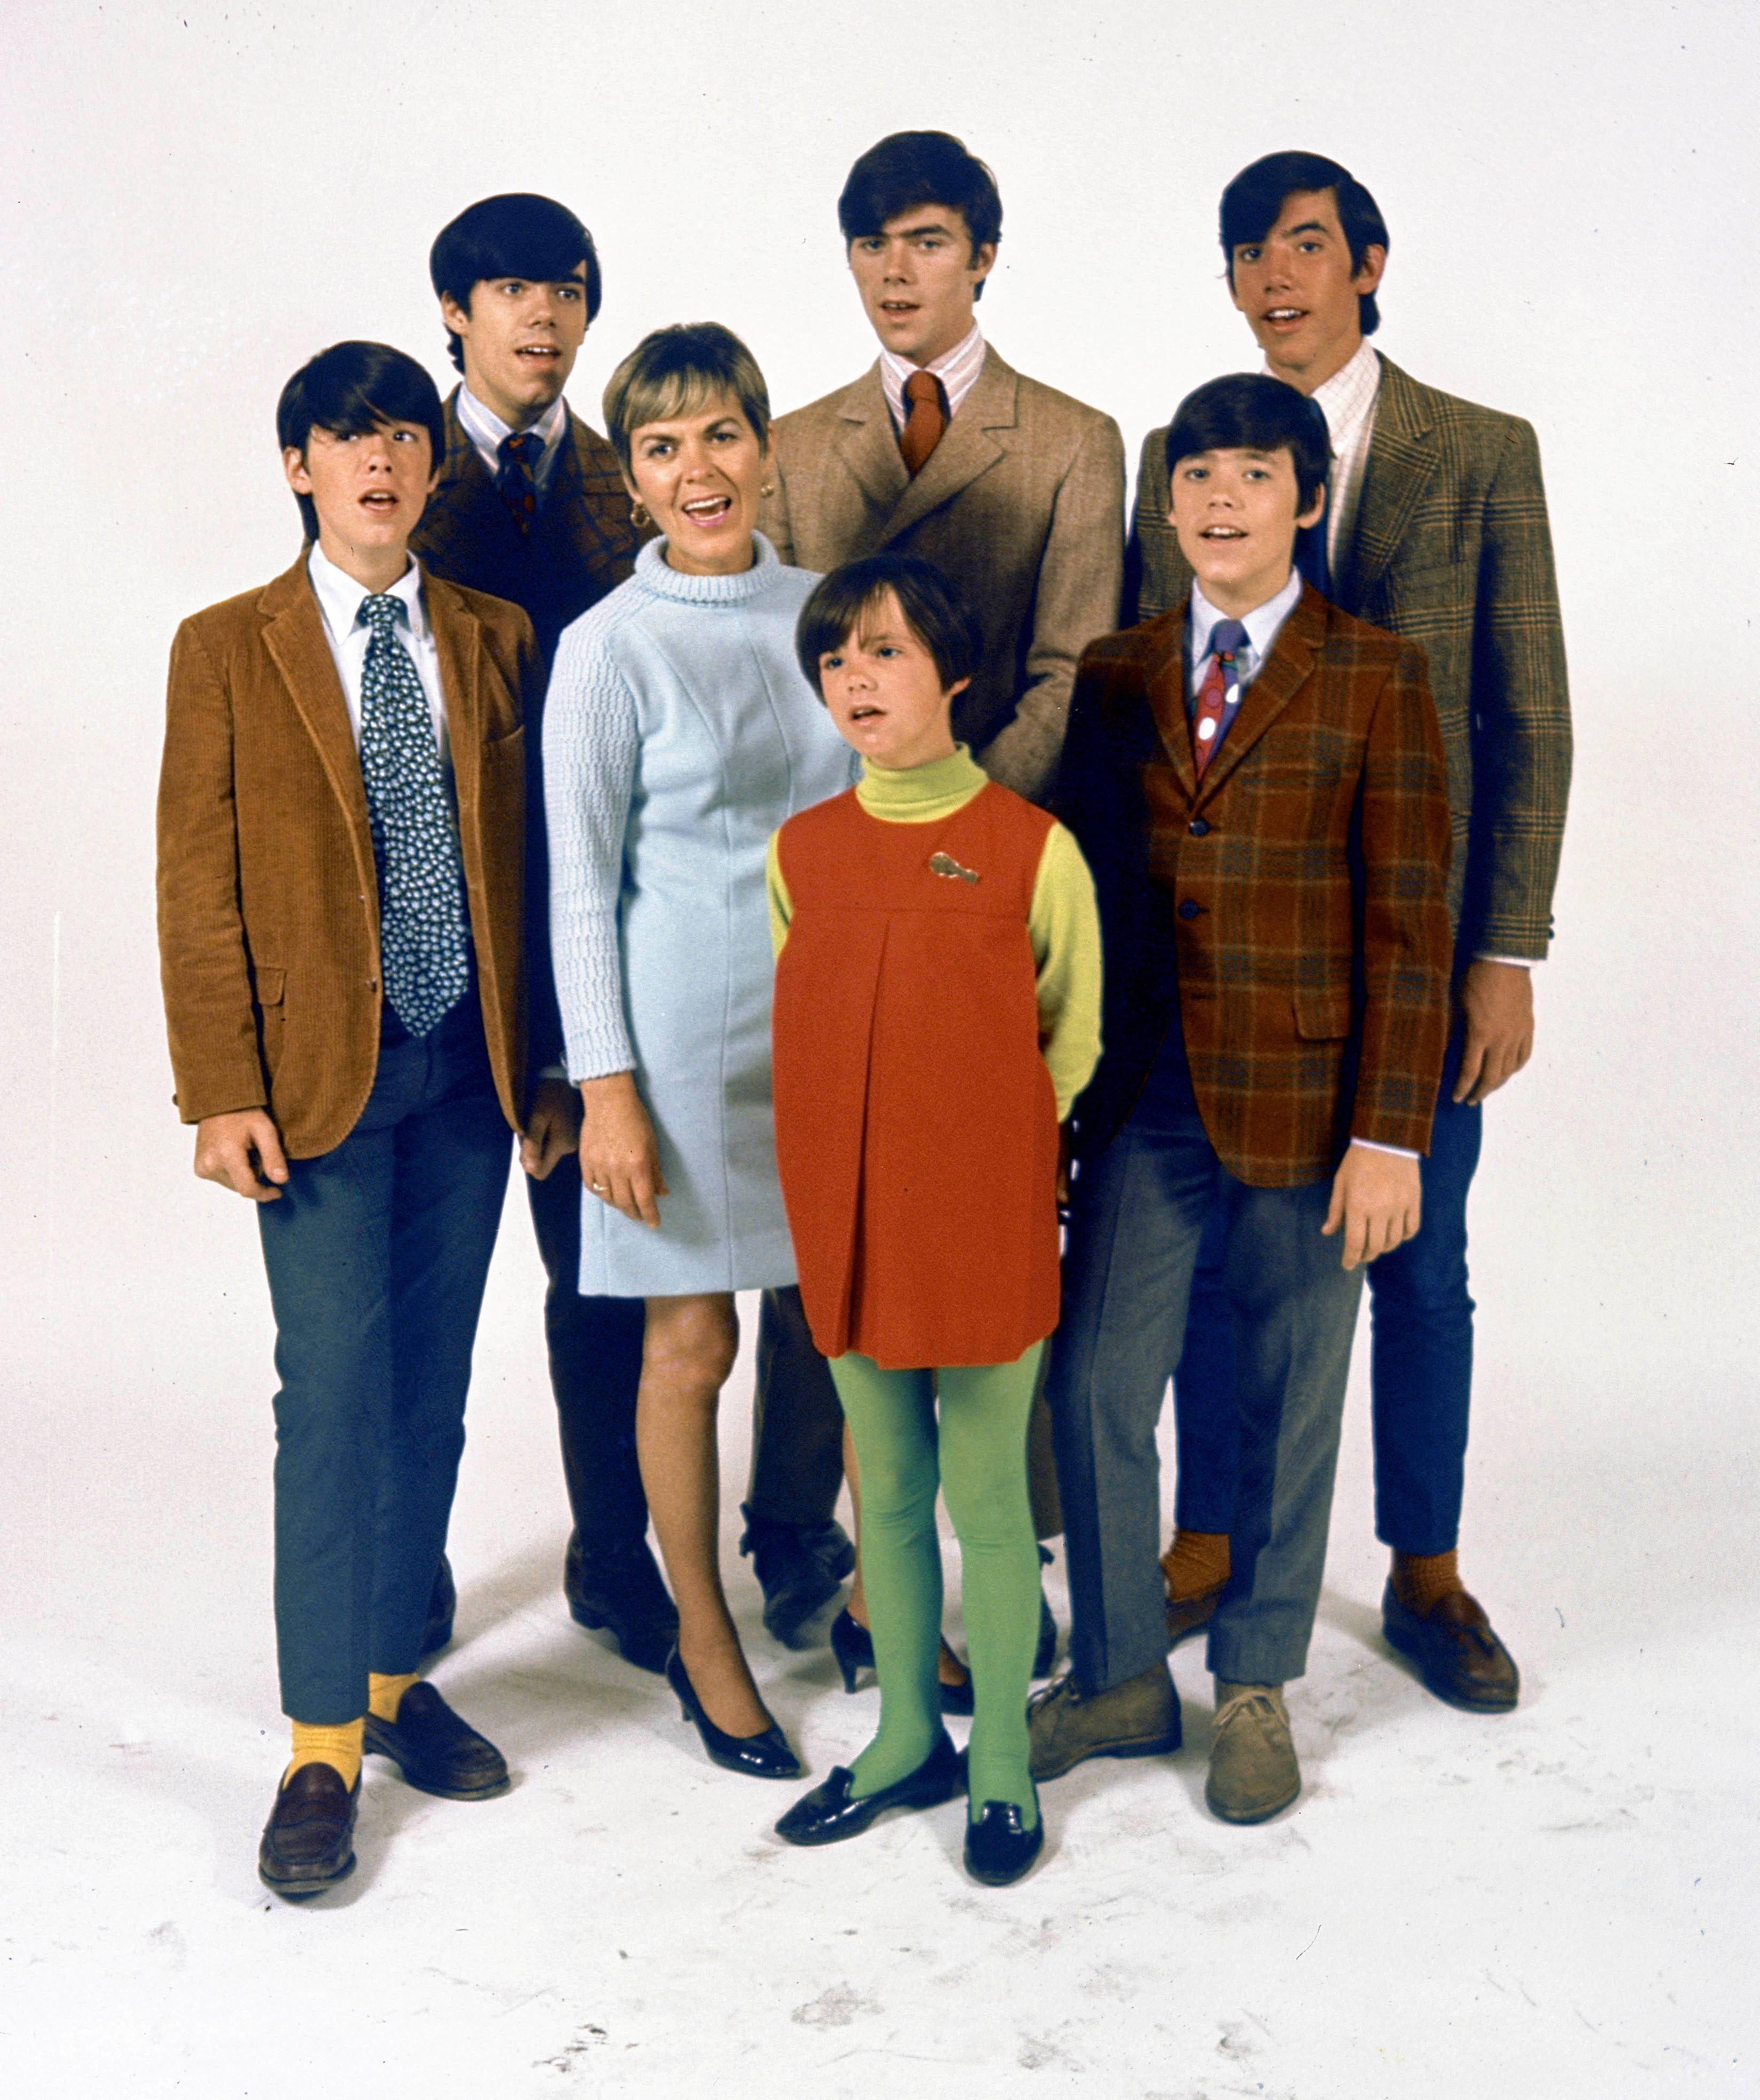 The Cowsills, a popular group of singing siblings and their mom shown here in a late-1960s publicity photo, were the subject of a documentary in 2011.